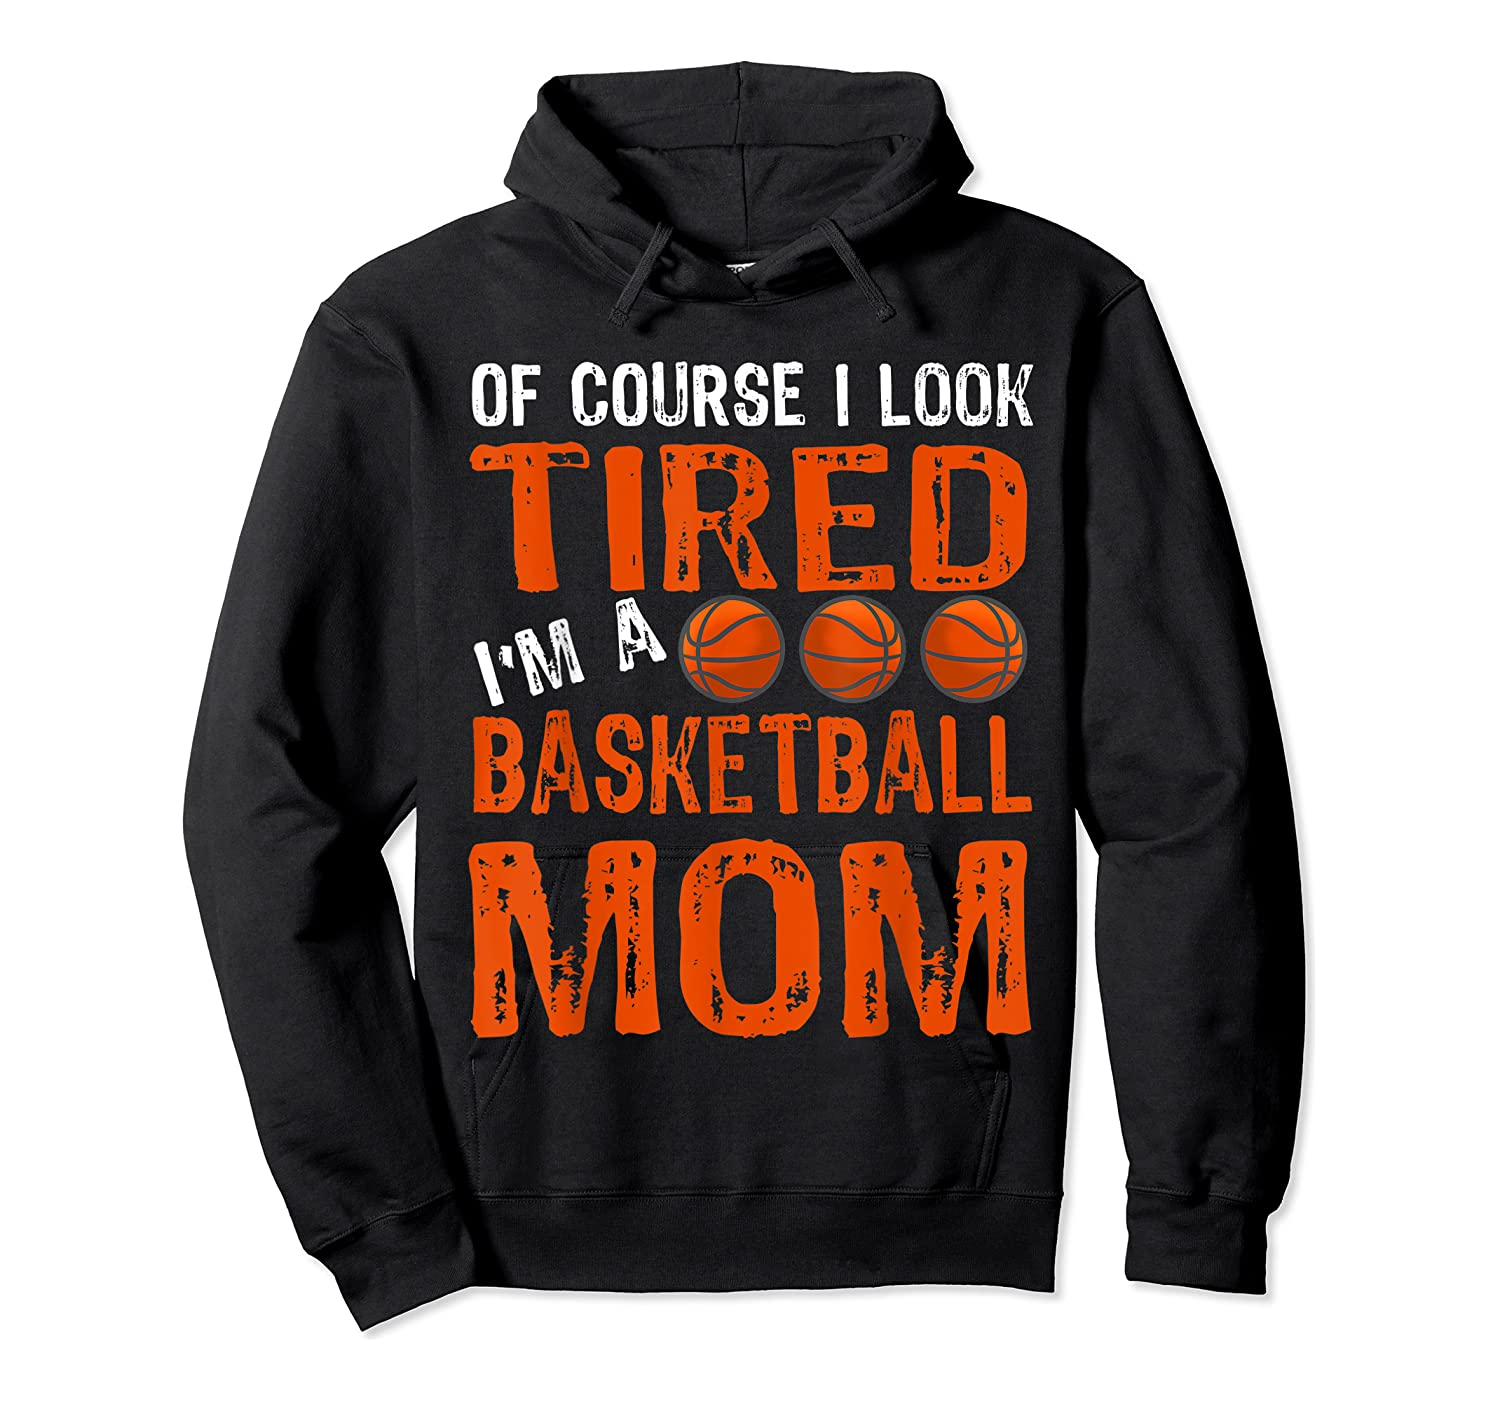 Basketball Player Mom Funny Mother Of Course I'm Tired T-shirt Unisex Pullover Hoodie